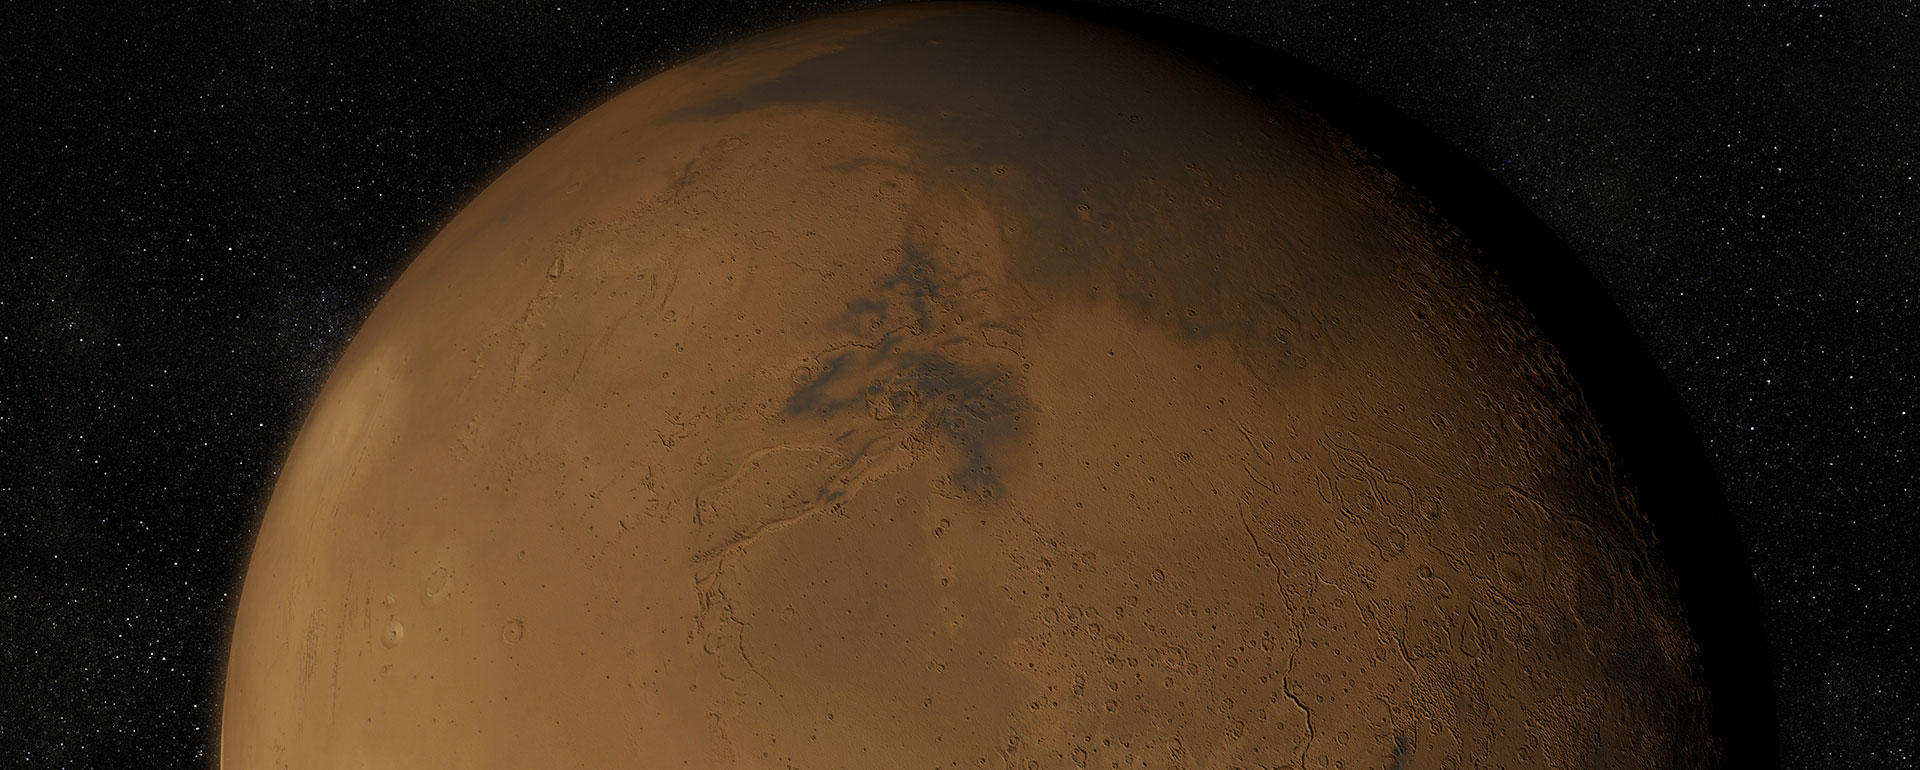 The red planet Mars, which has captivated human imagination since the ancient Babylonians.